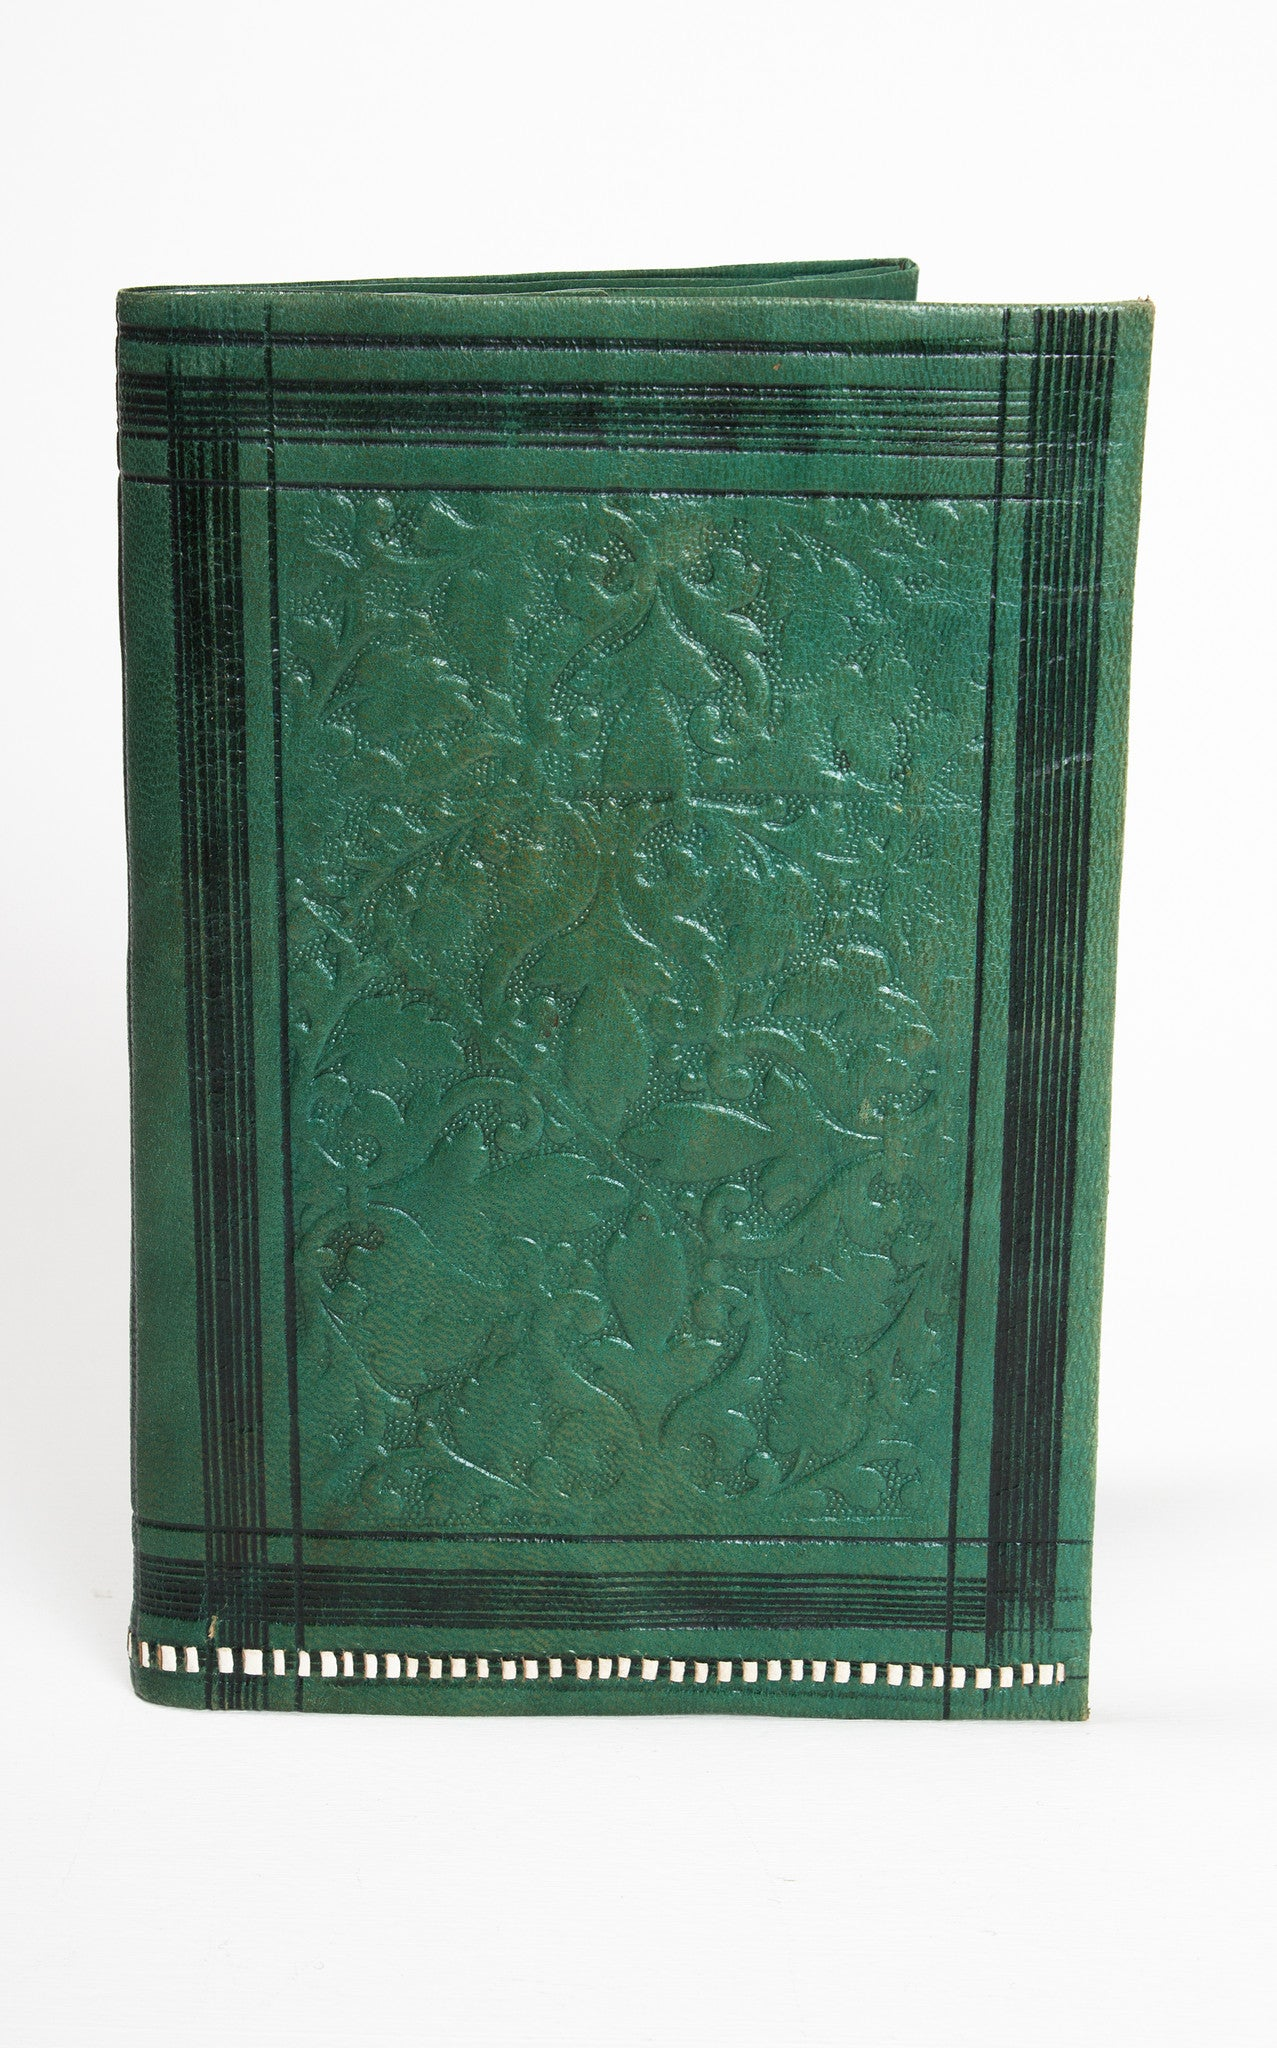 1910s Edwardian Art Nouveau Hand Tooled Green Kid Leather Wallet & Coin Purse